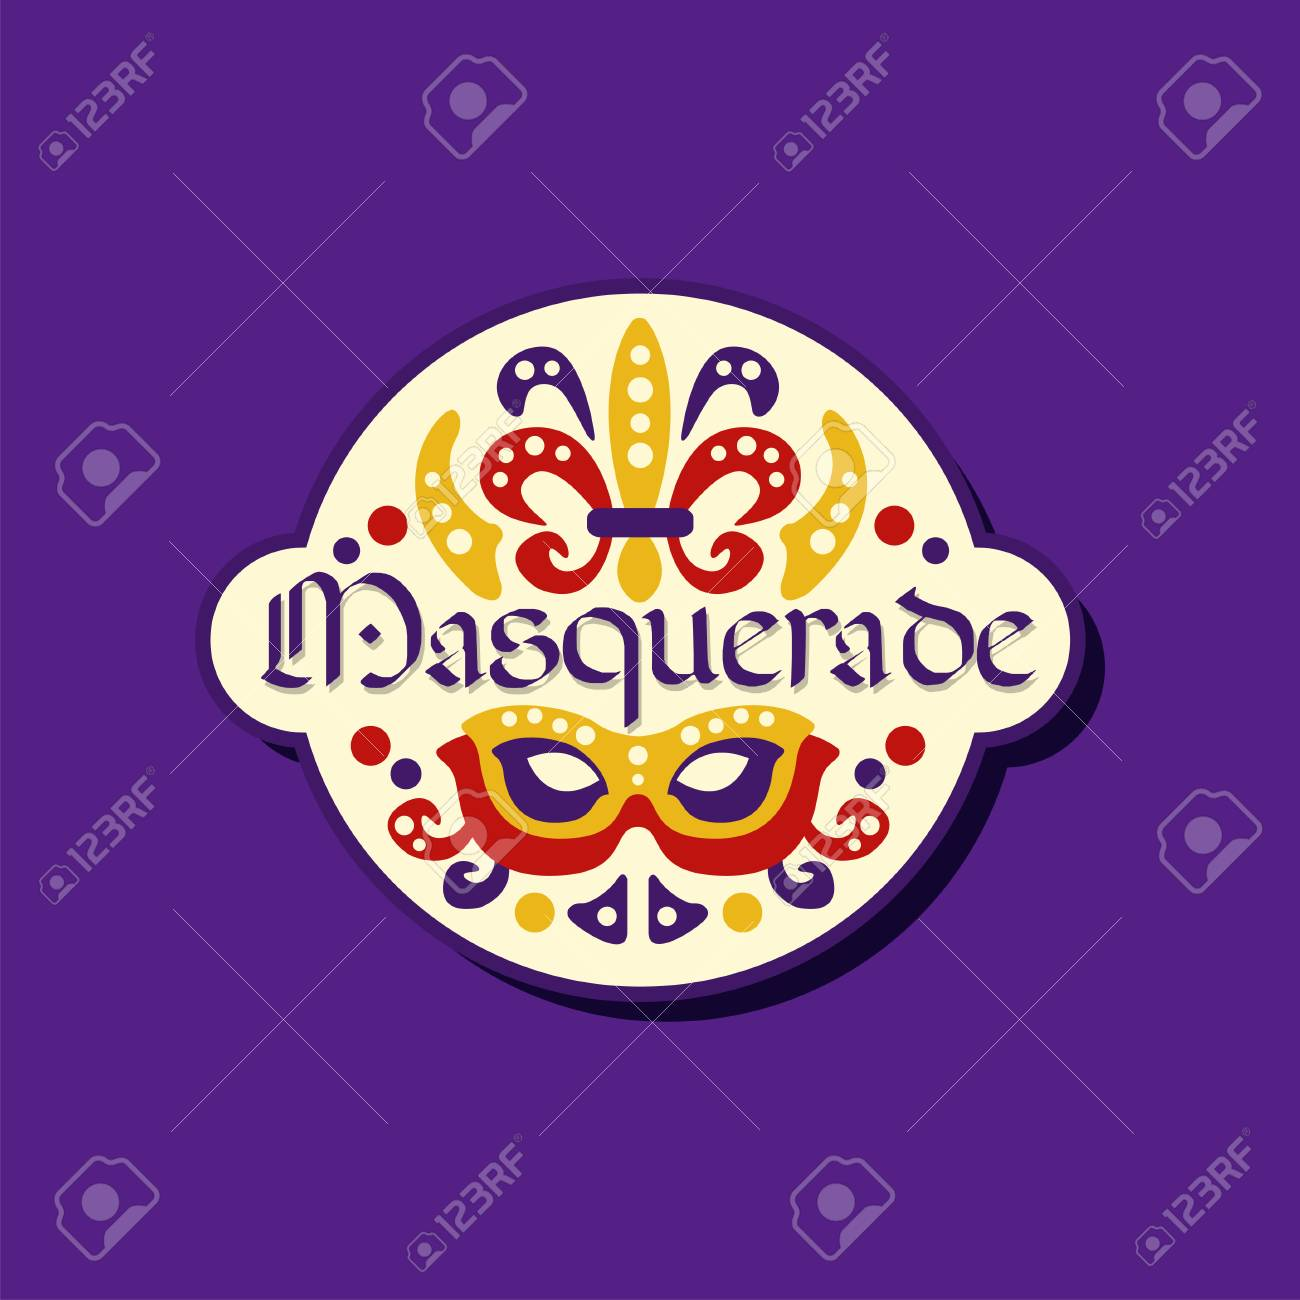 Colorful logo or label for masquerade  Carnival stickers with